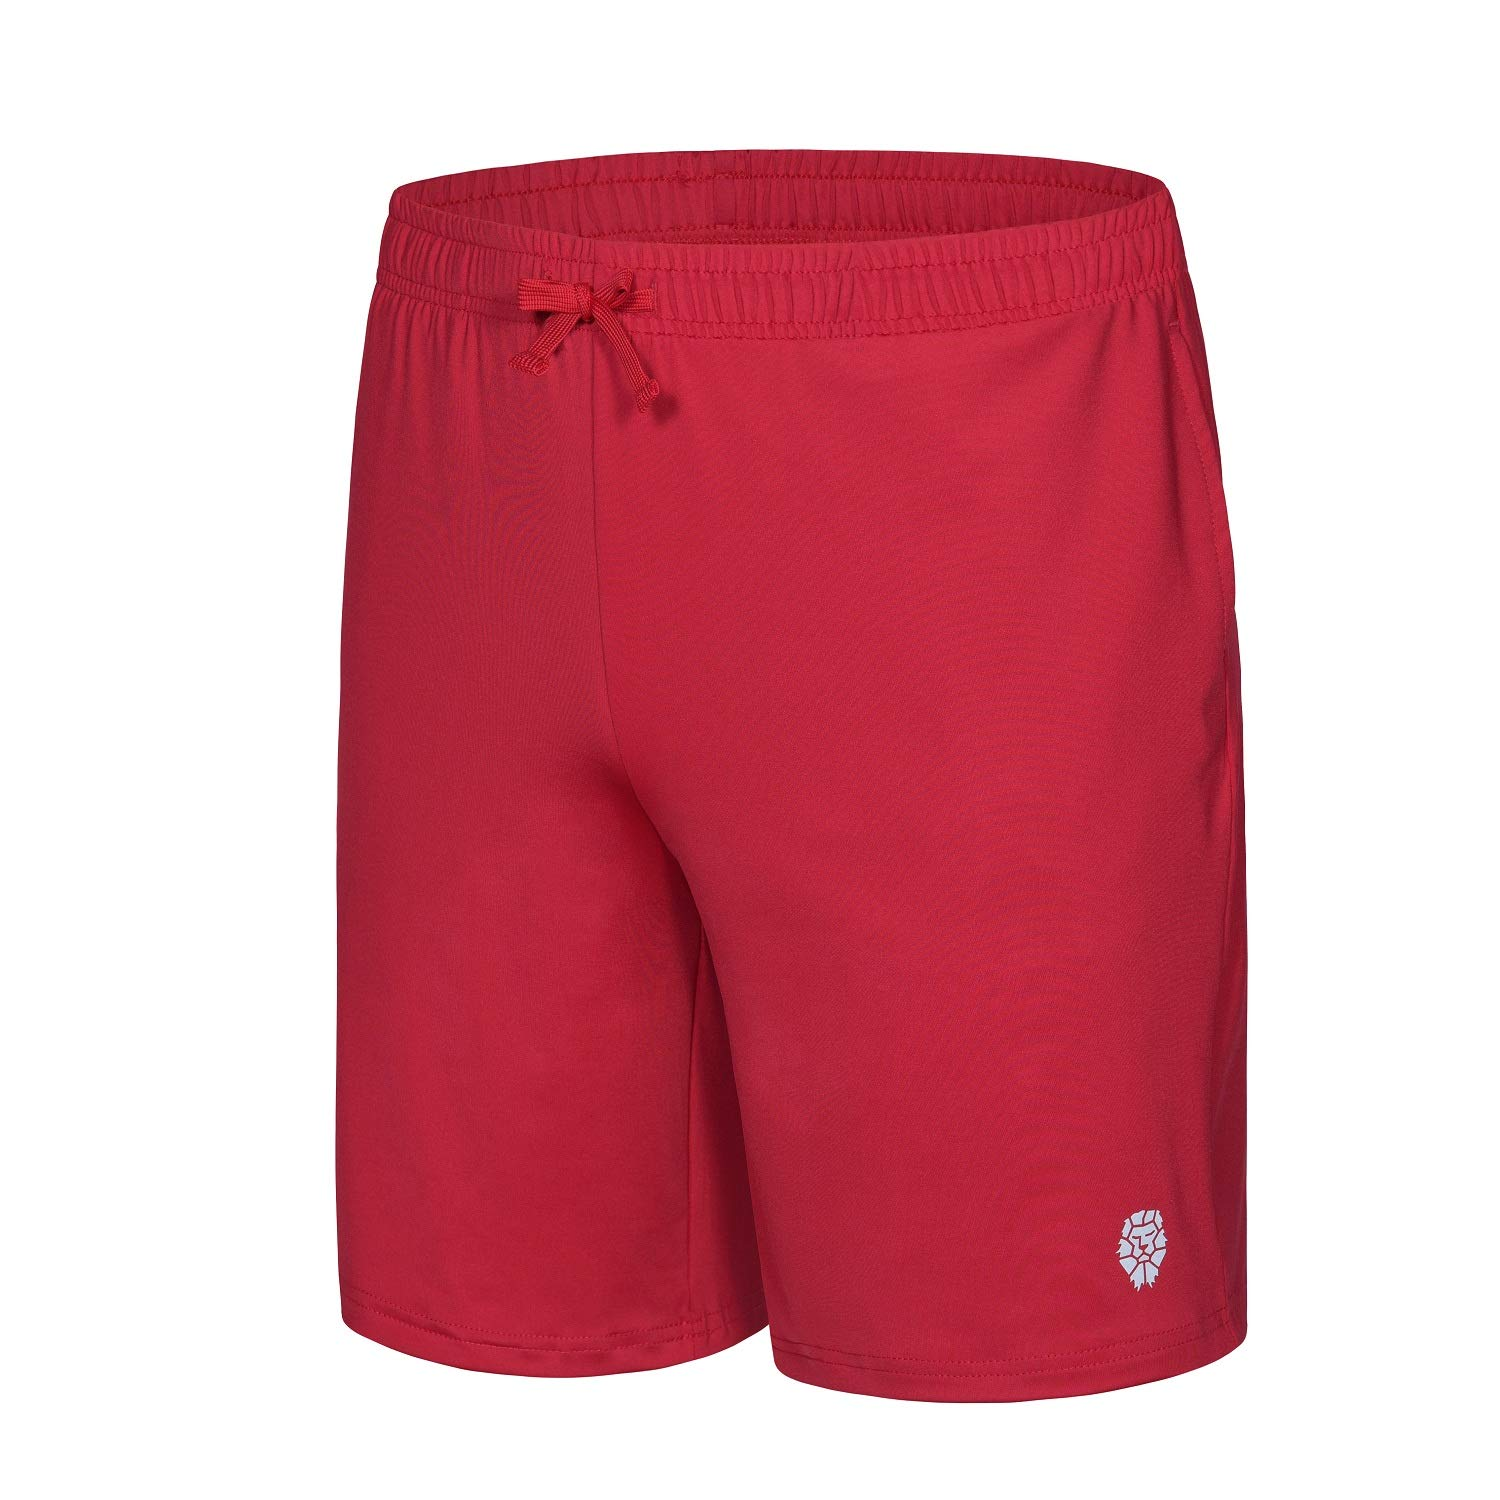 PIQIDIG Youth Boys' Loose Fit Athletic Shorts Quick Dry Active Shorts with Pocket, 2-Pack (Red(1-Pack), X-Small) by PIQIDIG